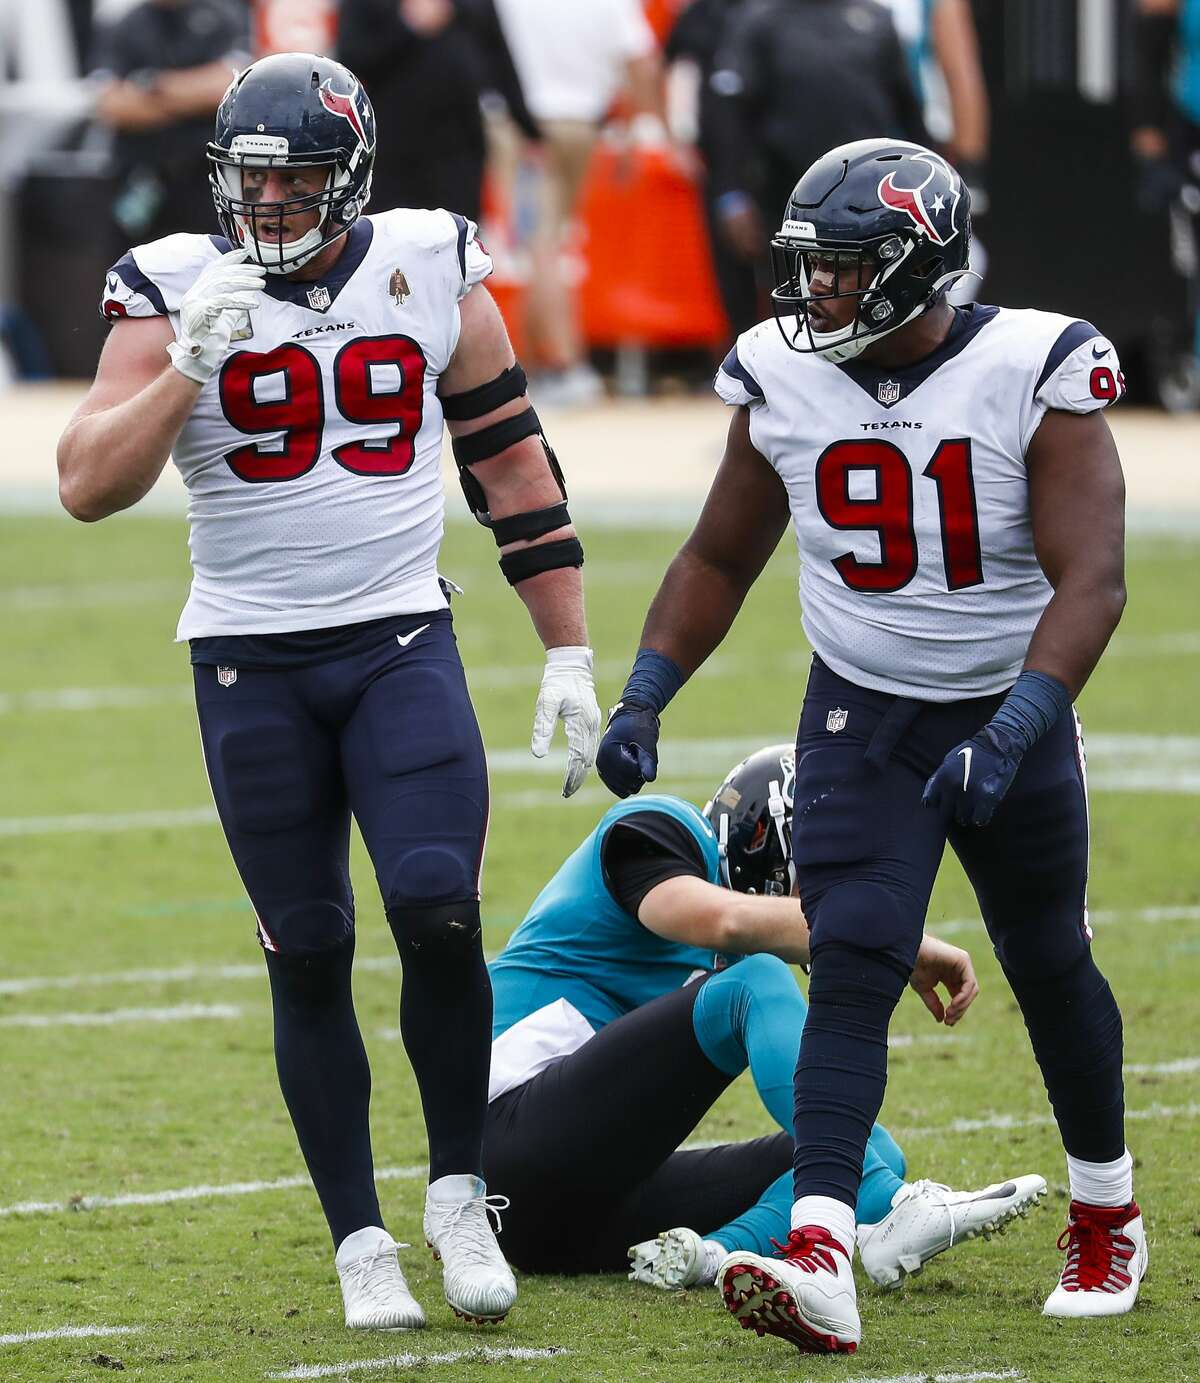 Houston Texans defensive end J.J. Watt (99) and Houston Texans defensive end Carlos Watkins (91) celebrate after Watt sacked Jacksonville Jaguars quarterback Jake Luton during the second half of an NFL football game at TIAA Bank Field Sunday, Nov. 8, 2020, in Jacksonville. The sack was Watt's 100th career sack.